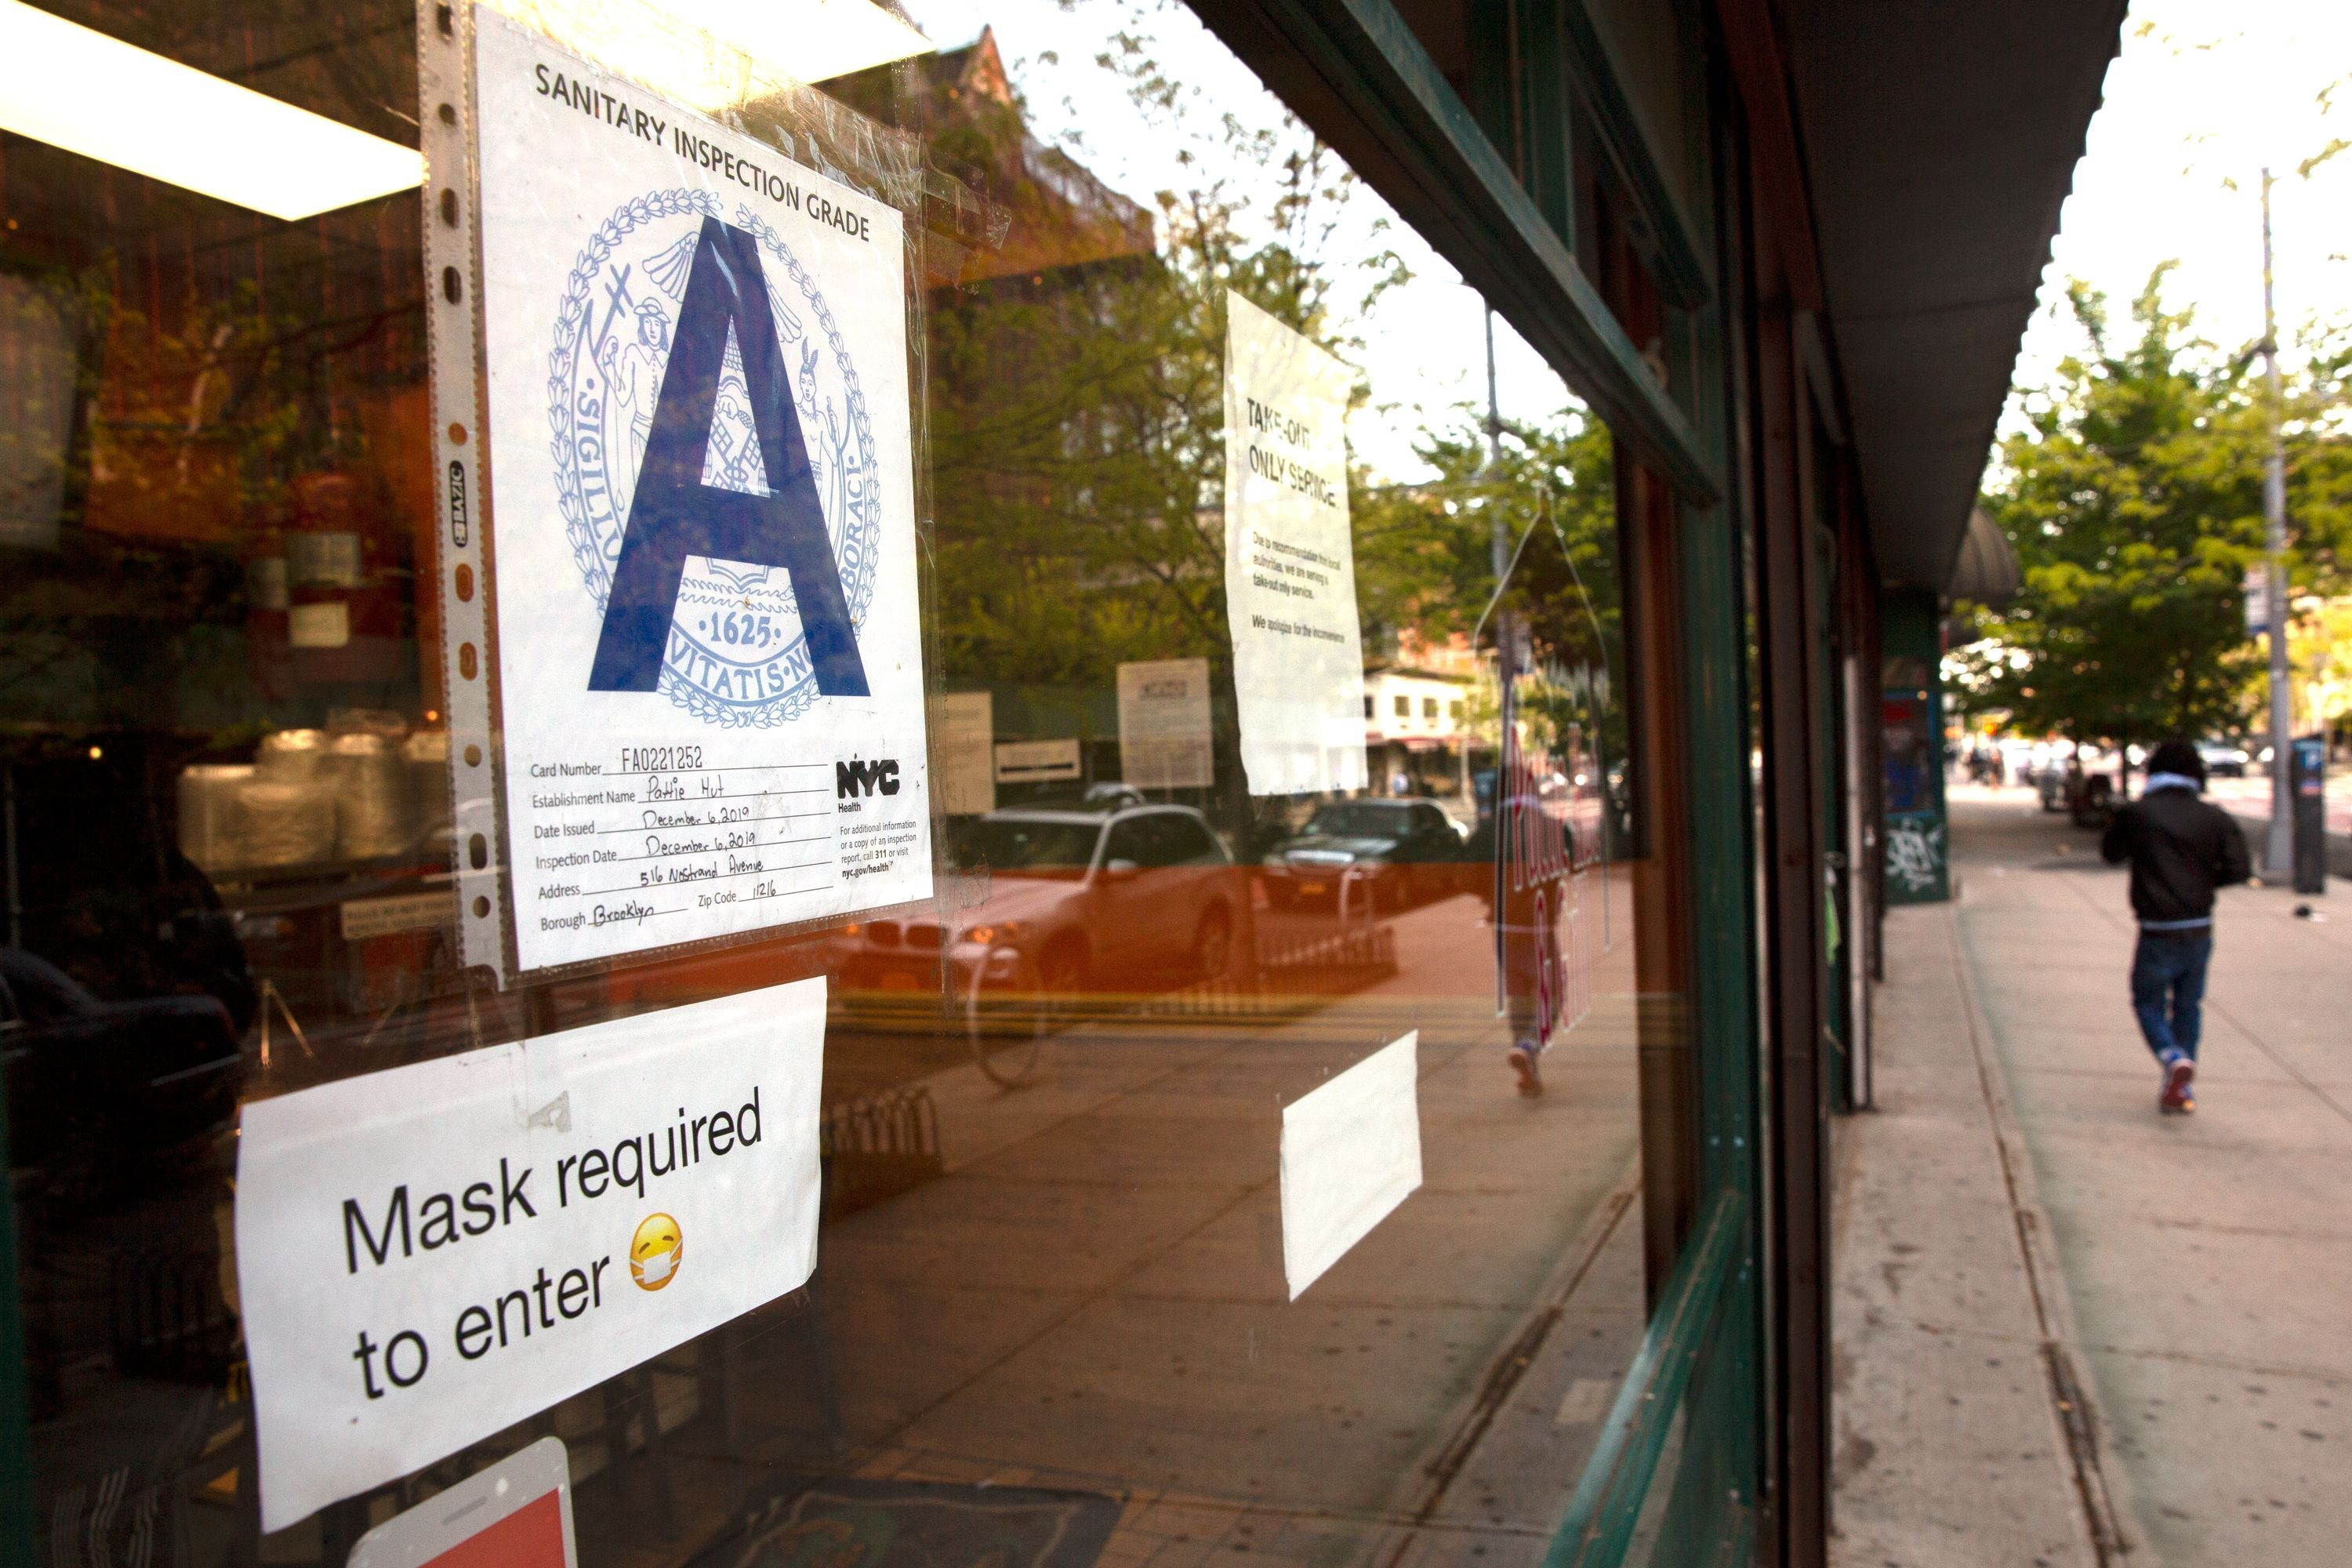 An inspection grade on a Bed-Stuy eatery during the coronavirus outbreak, May 13, 2020.